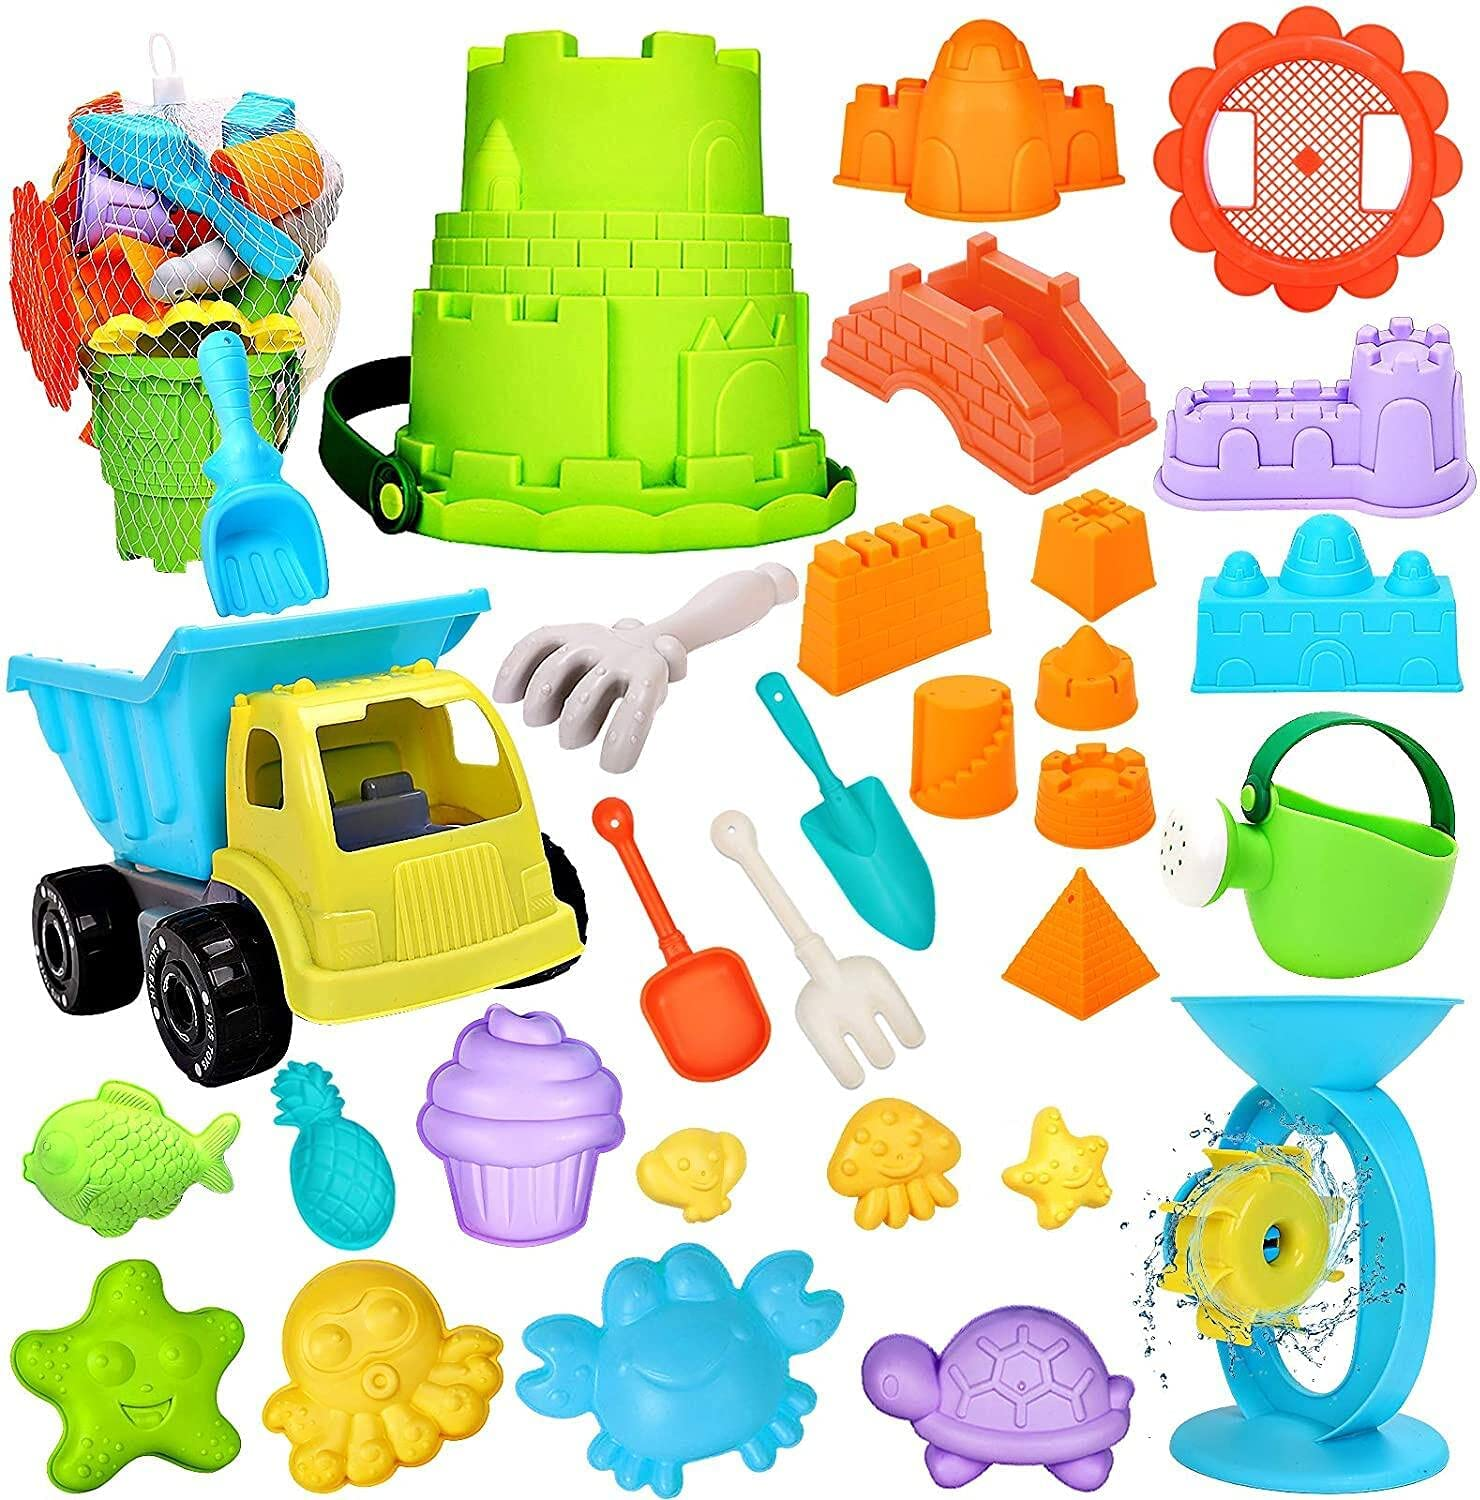 RichSmile 32Pcs Kids Beach Sand Toys Set Free Shipping New with Bag Very popular Mesh Includes